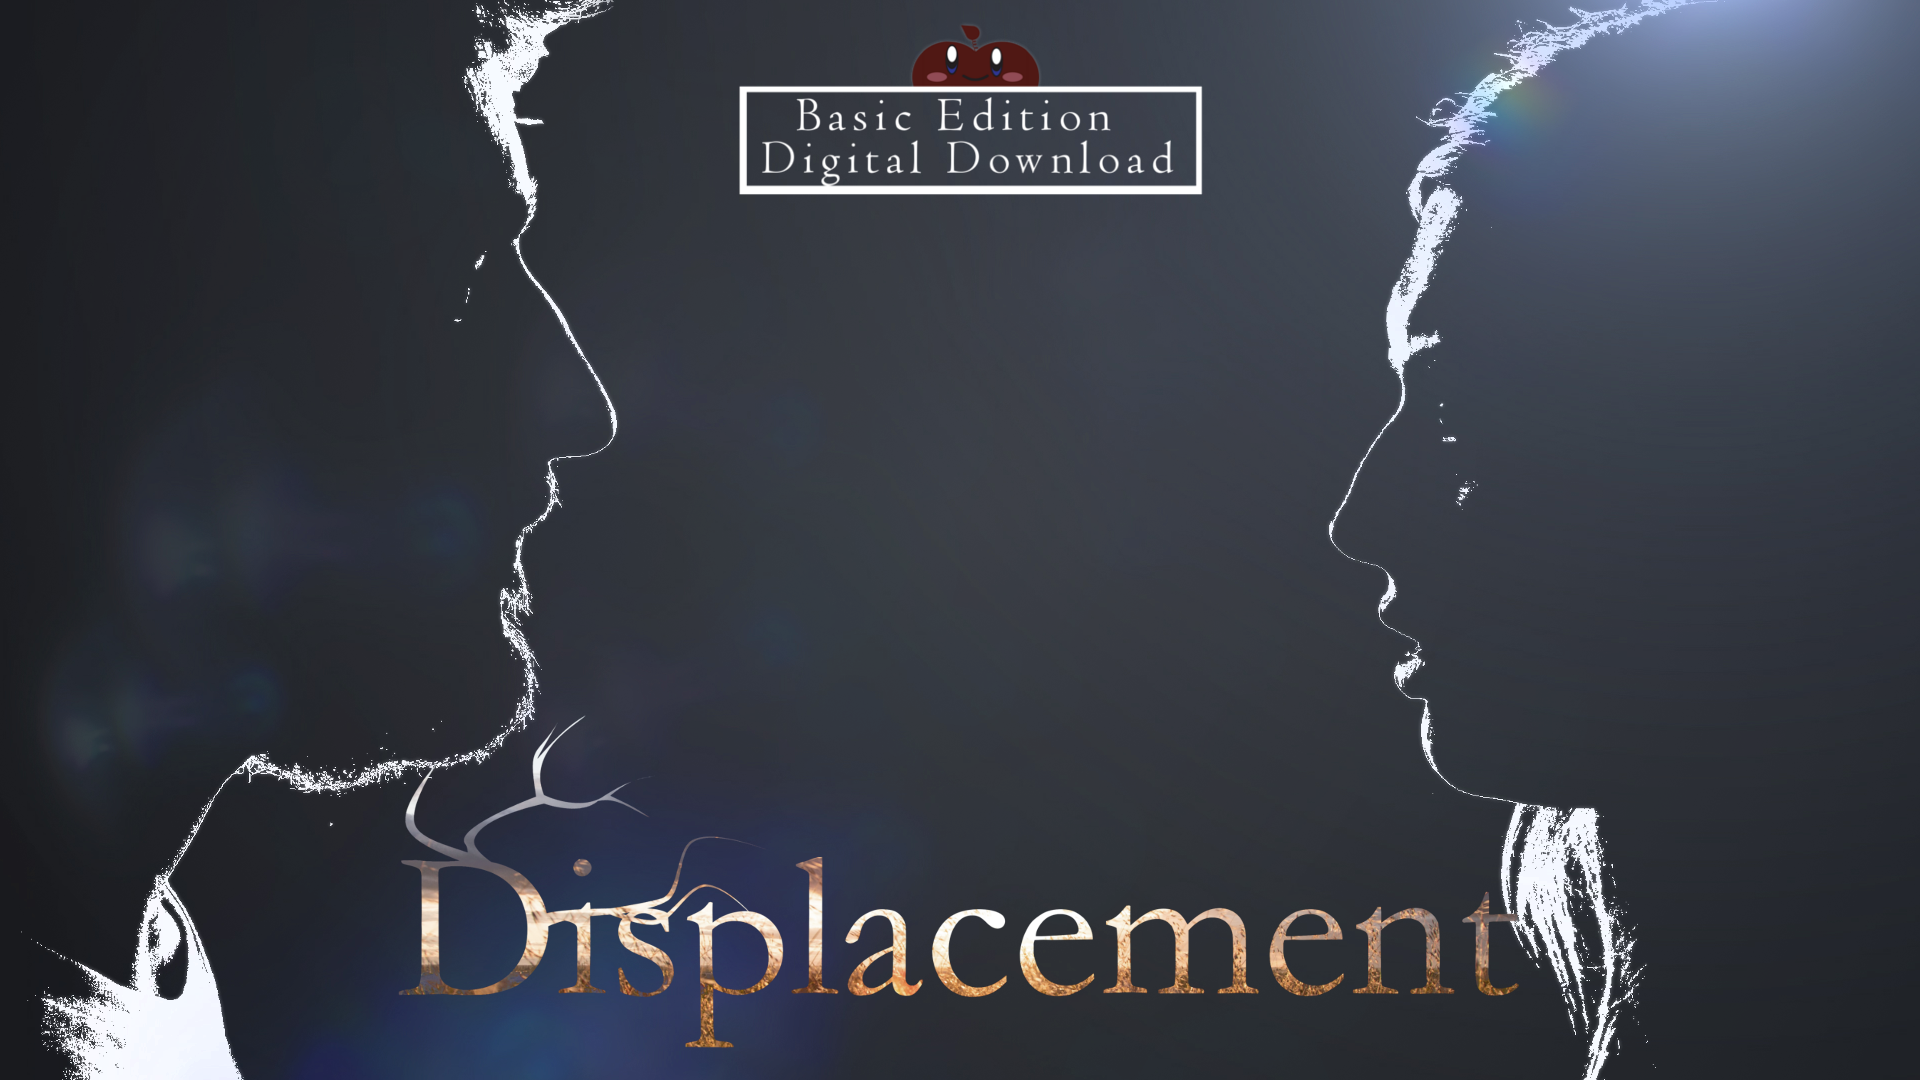 Displacement - Basic Edition Digital Download